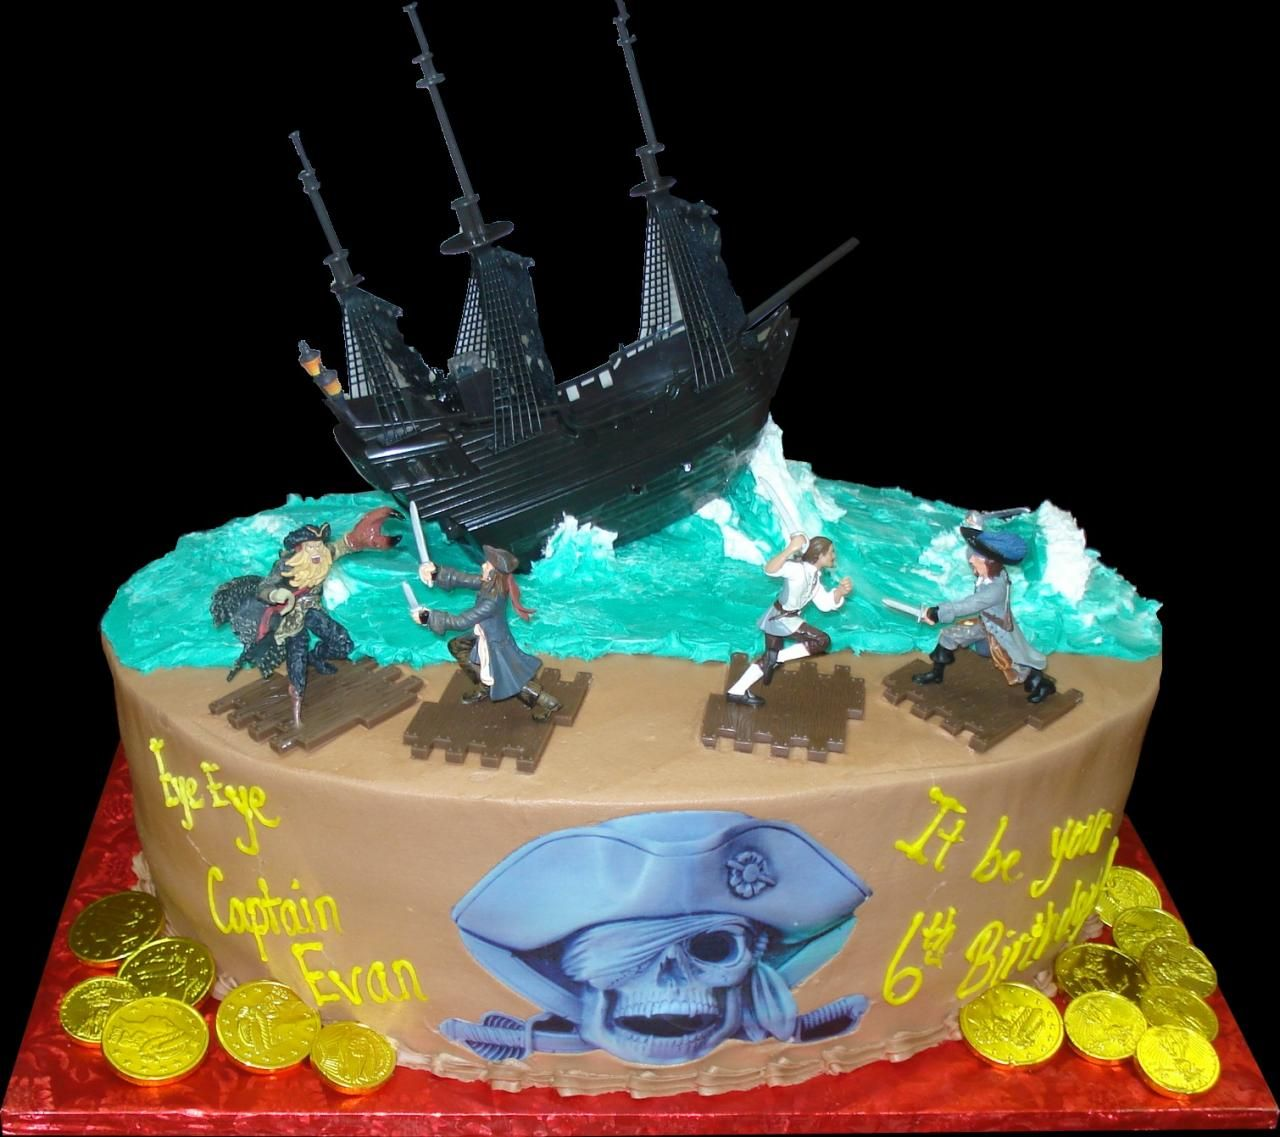 Pirate Ship Birthday Cake Brown buttercream iced oval cake